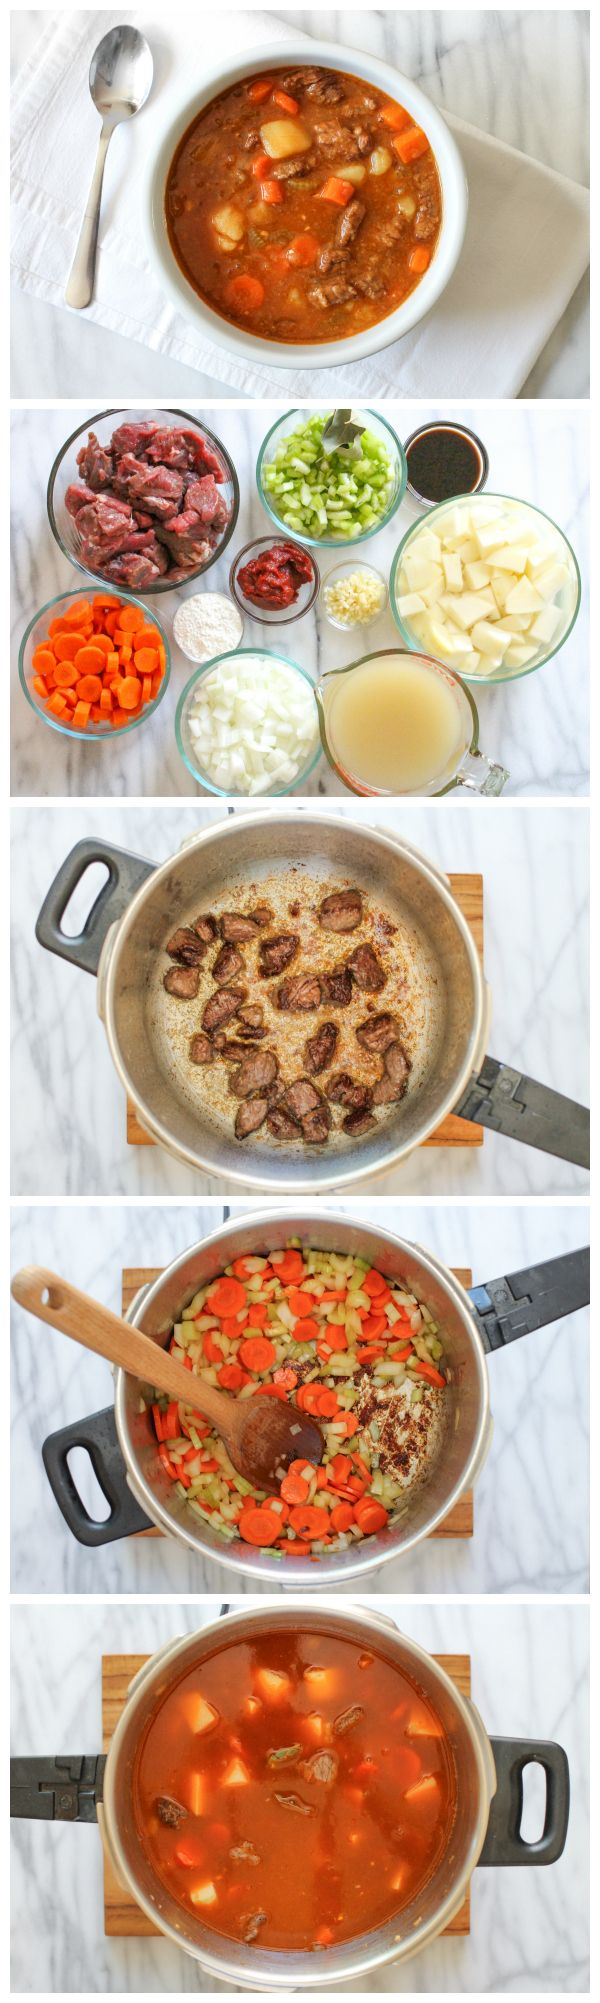 This delicious meal in <1hr? Pressure cooker, you are amazing.